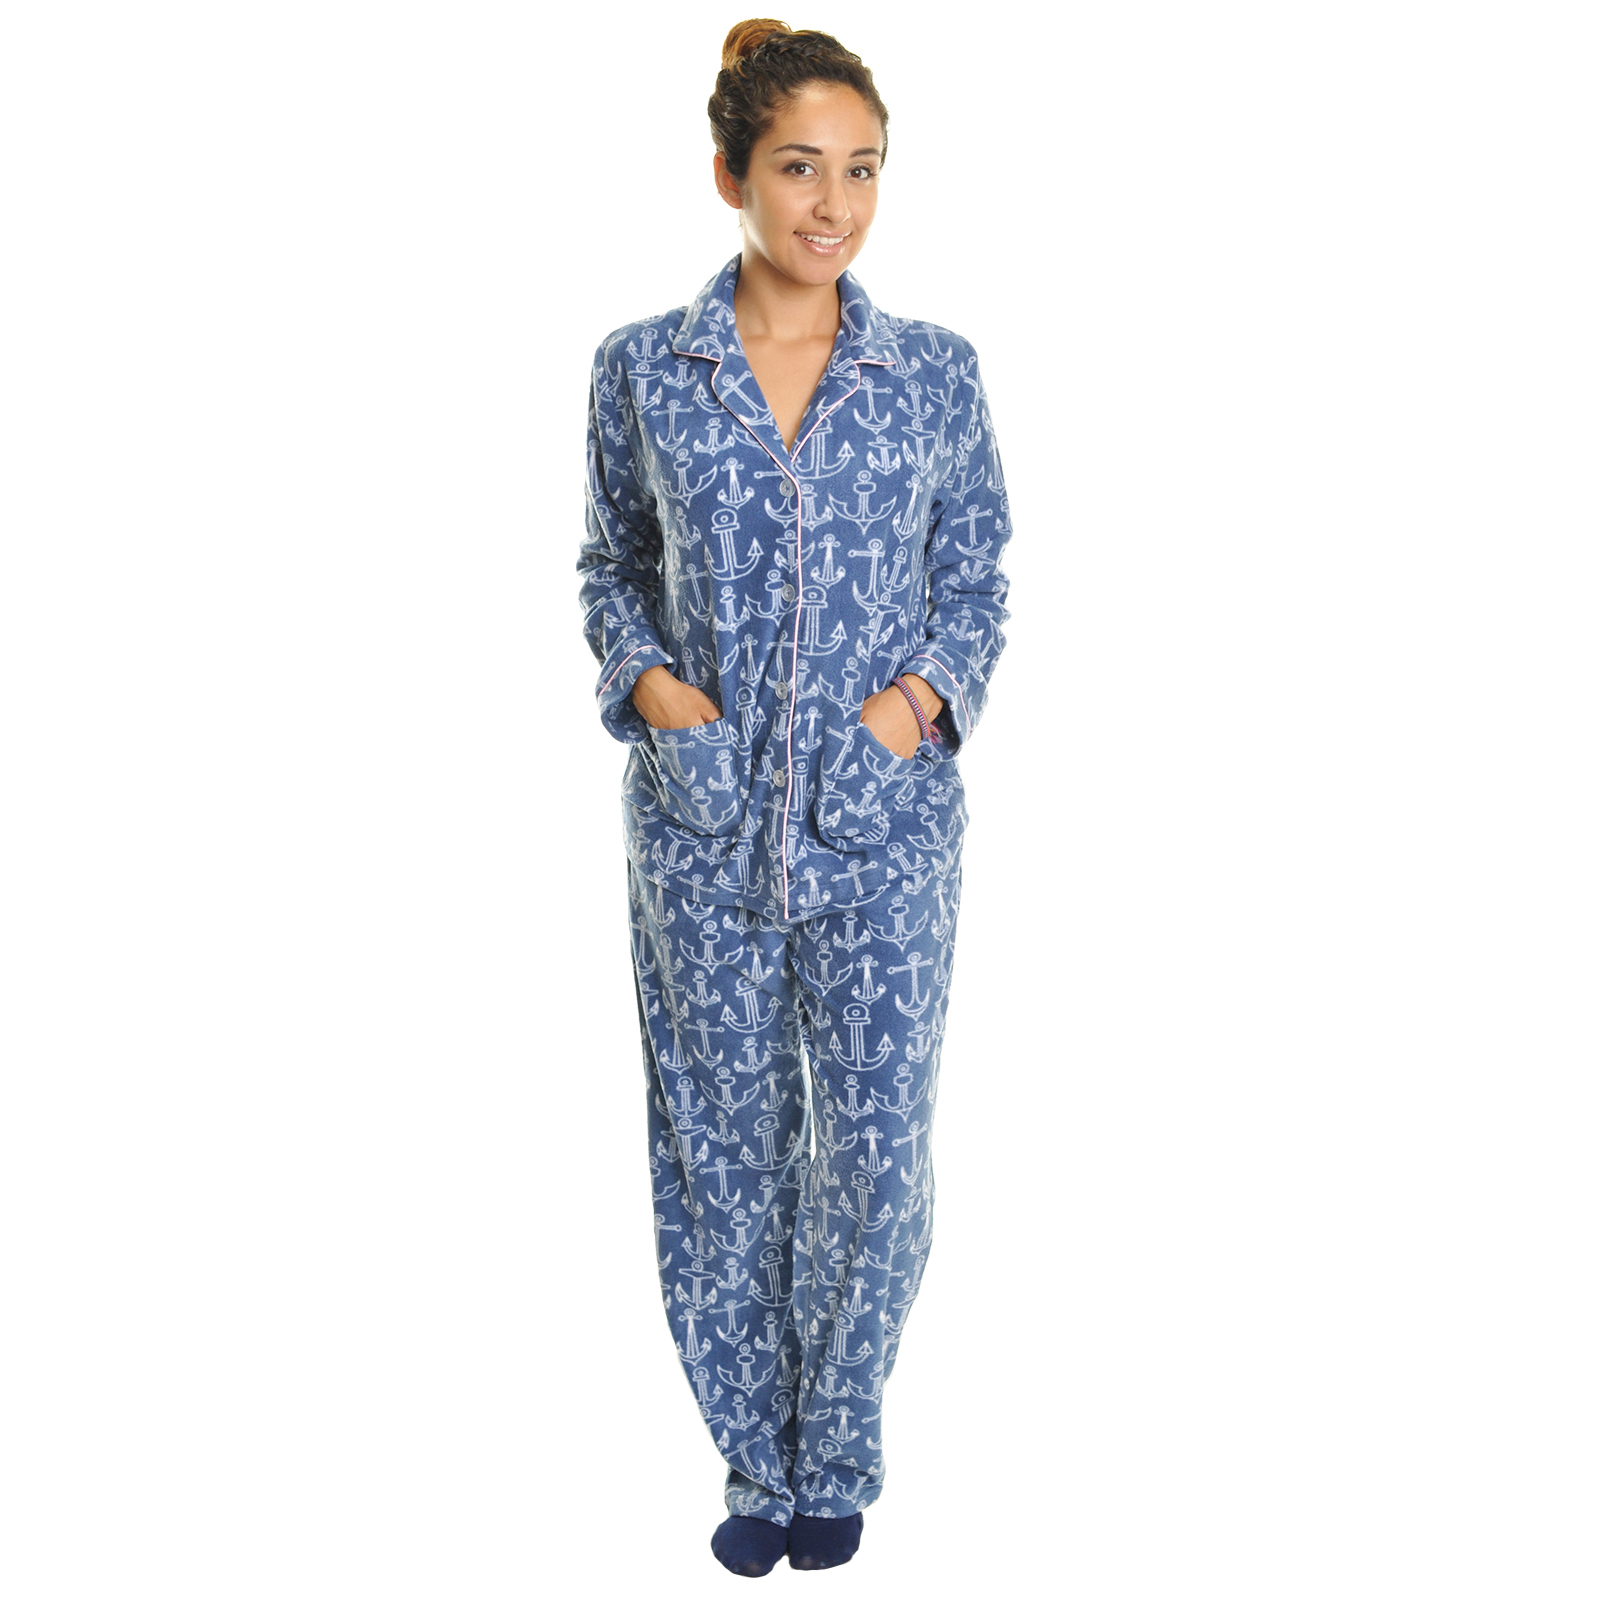 Buy Pajamas at Macy's and get FREE SHIPPING with $99 purchase! Great selection of popular pajama pants and top sets and more pajama sets for women. Macy's Presents: The Edit- A curated mix of fashion and inspiration Check It Out. Free Shipping with $75 purchase + .